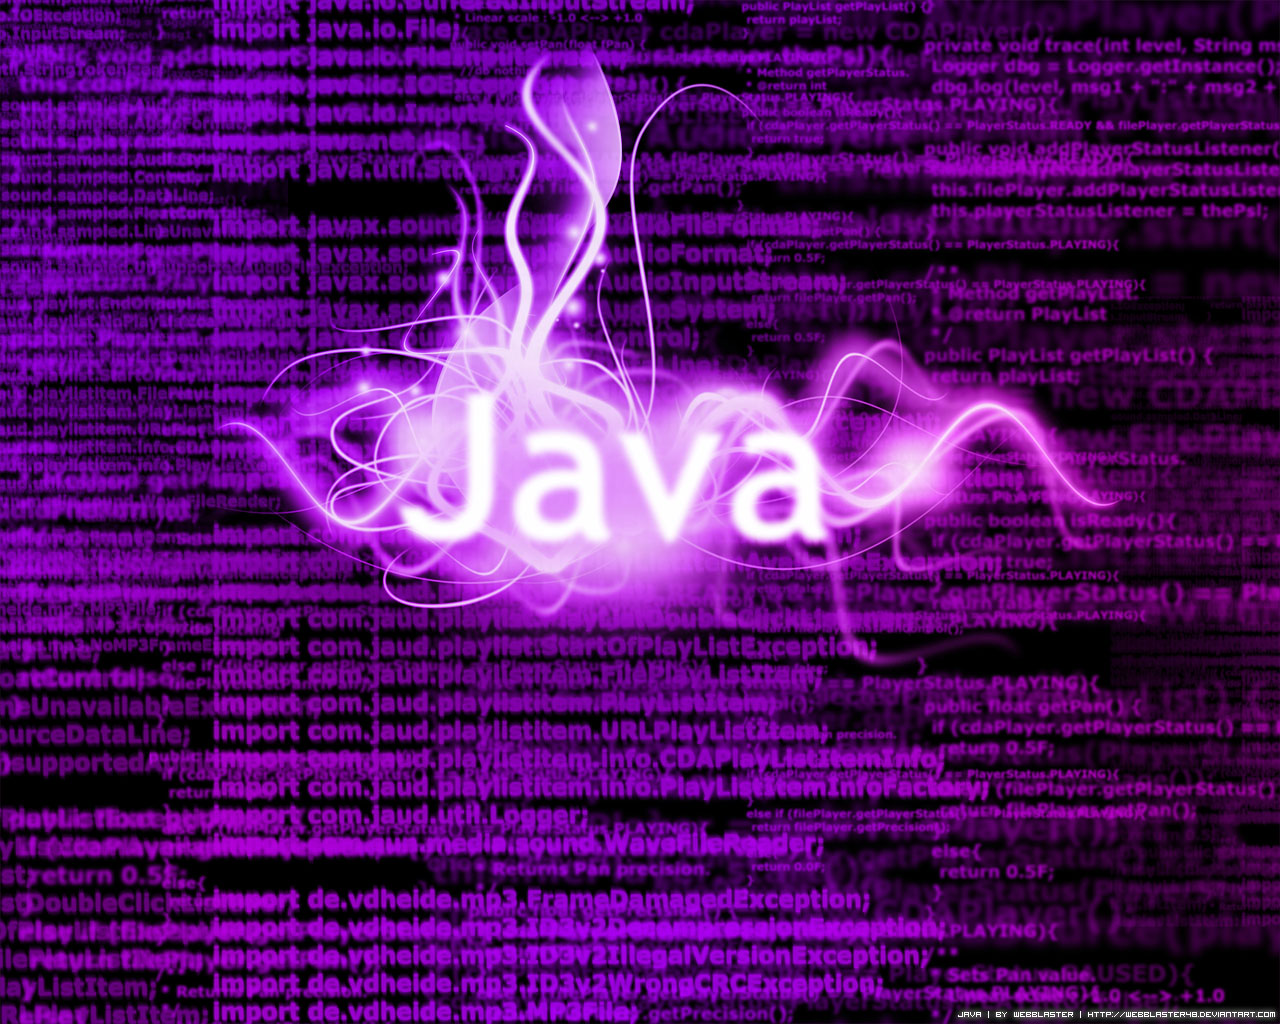 Java Code Wallpapers Java Code Myspace Backgrounds Java Code 1280x1024